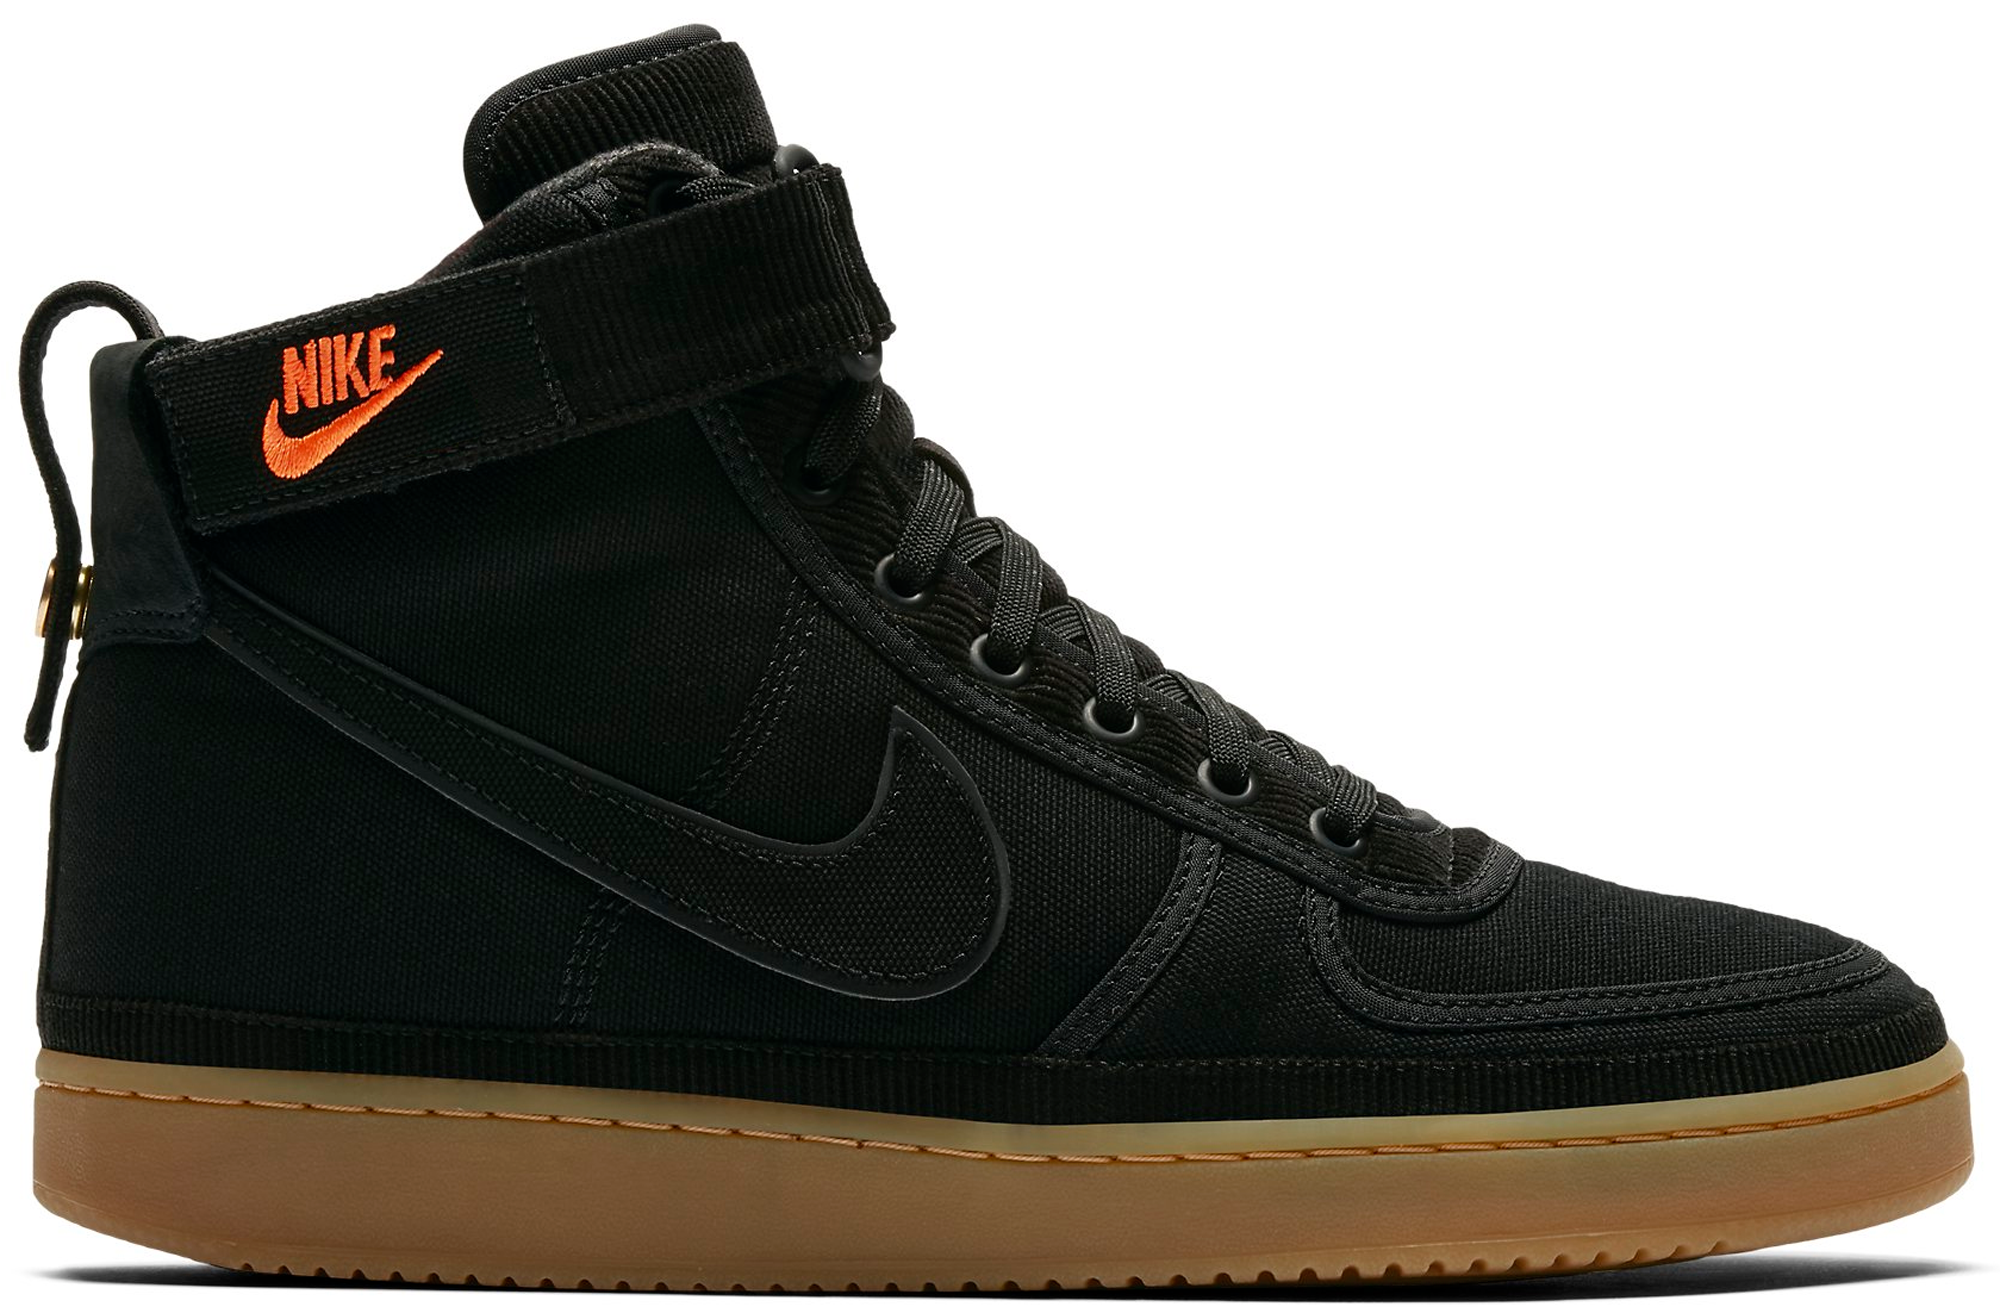 Nike Vandal High Supreme Carhartt WIP Black